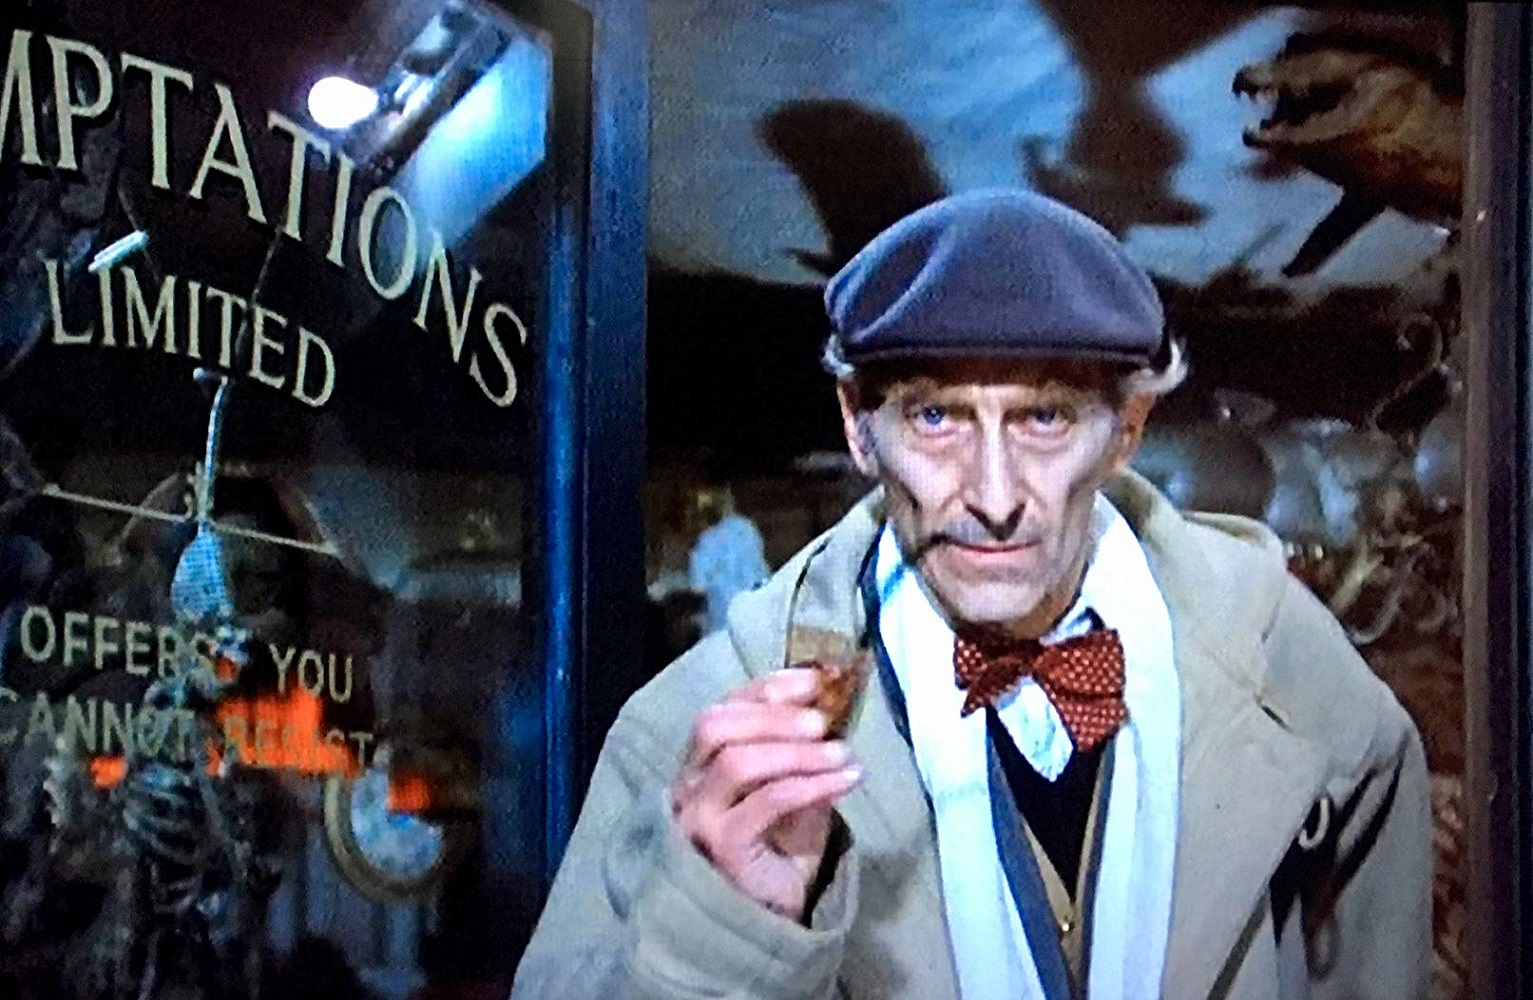 Peter Cushing as the antique store proprietor promises a little 'something extra' with everything he sells in From Beyond the Grave (1974)